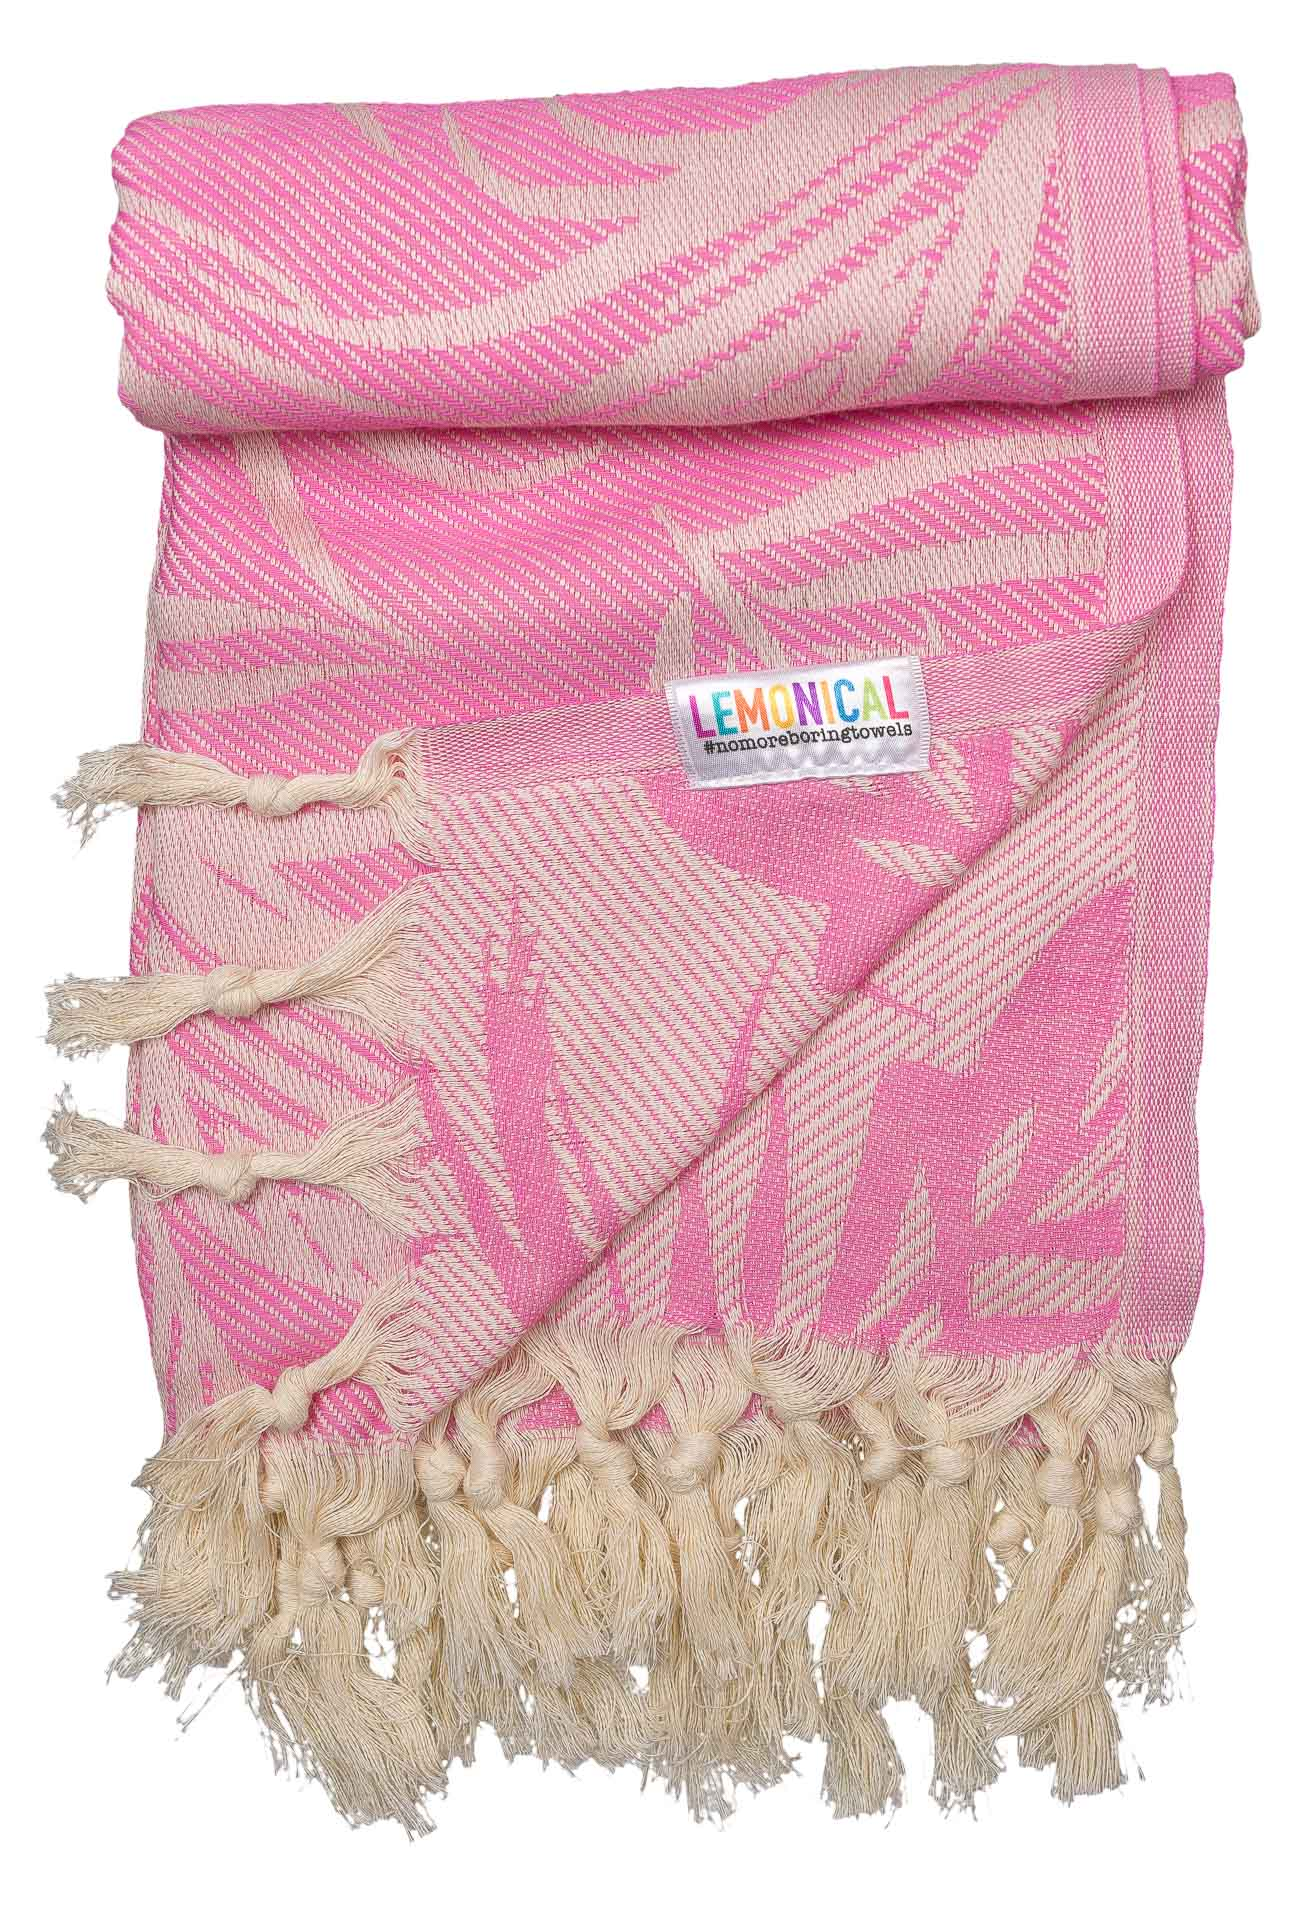 PINK FEATHER-Towel-Lemonical-4